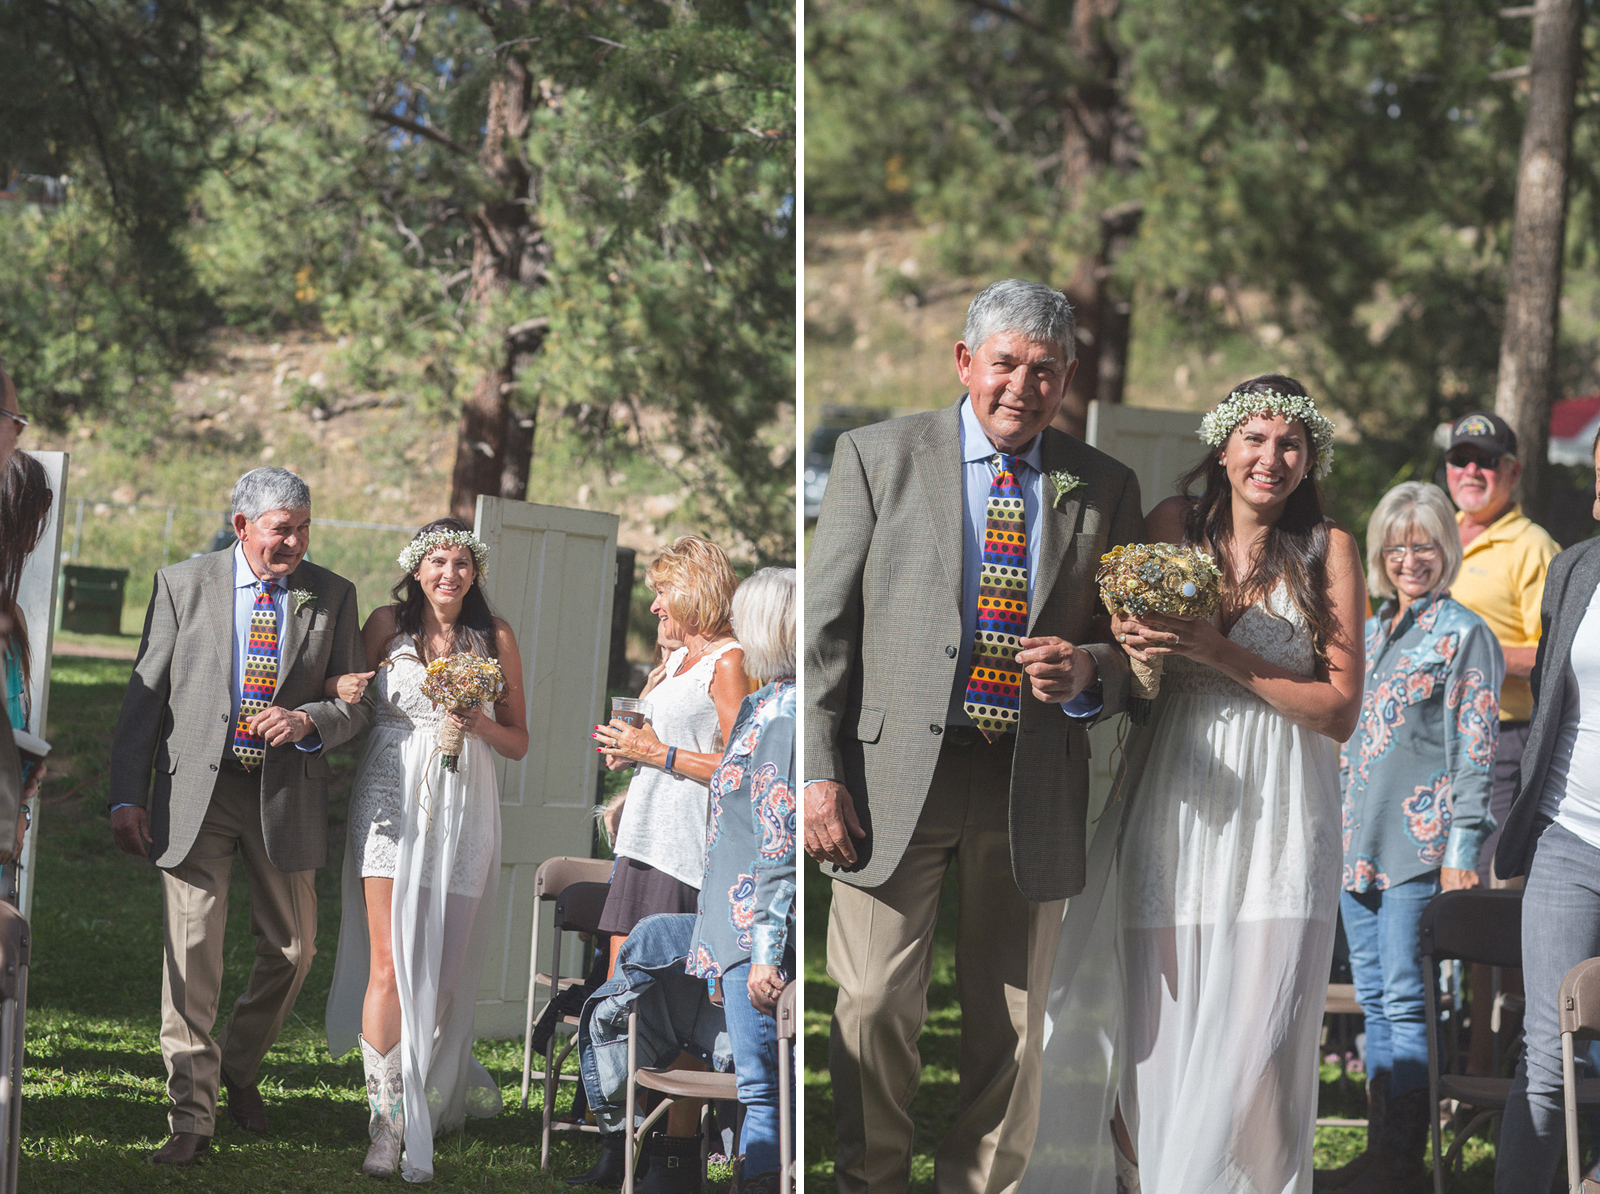 061-wedding-party-bus-fun-photography-ceremony